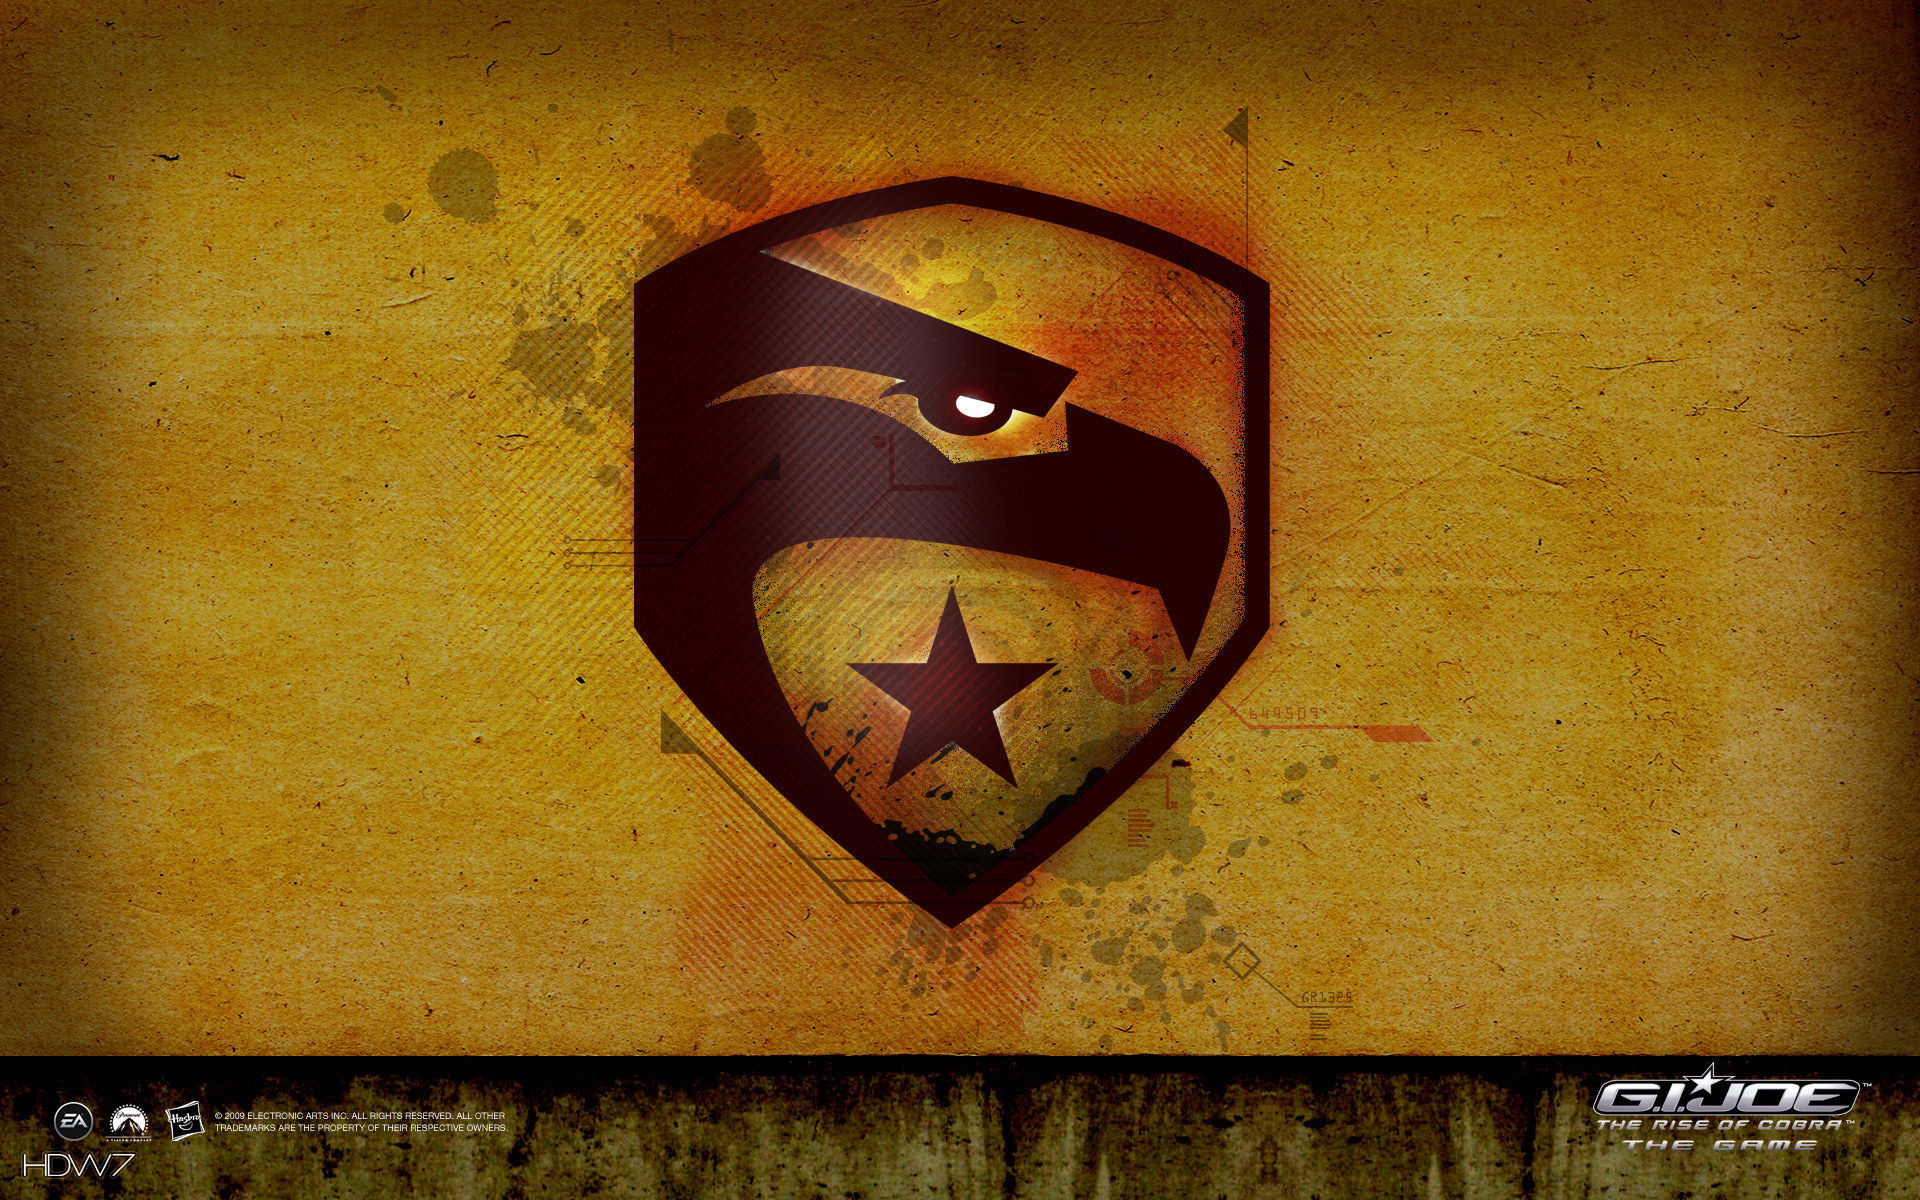 1920x1200 gi joe eagle logo widescreen wallpaper